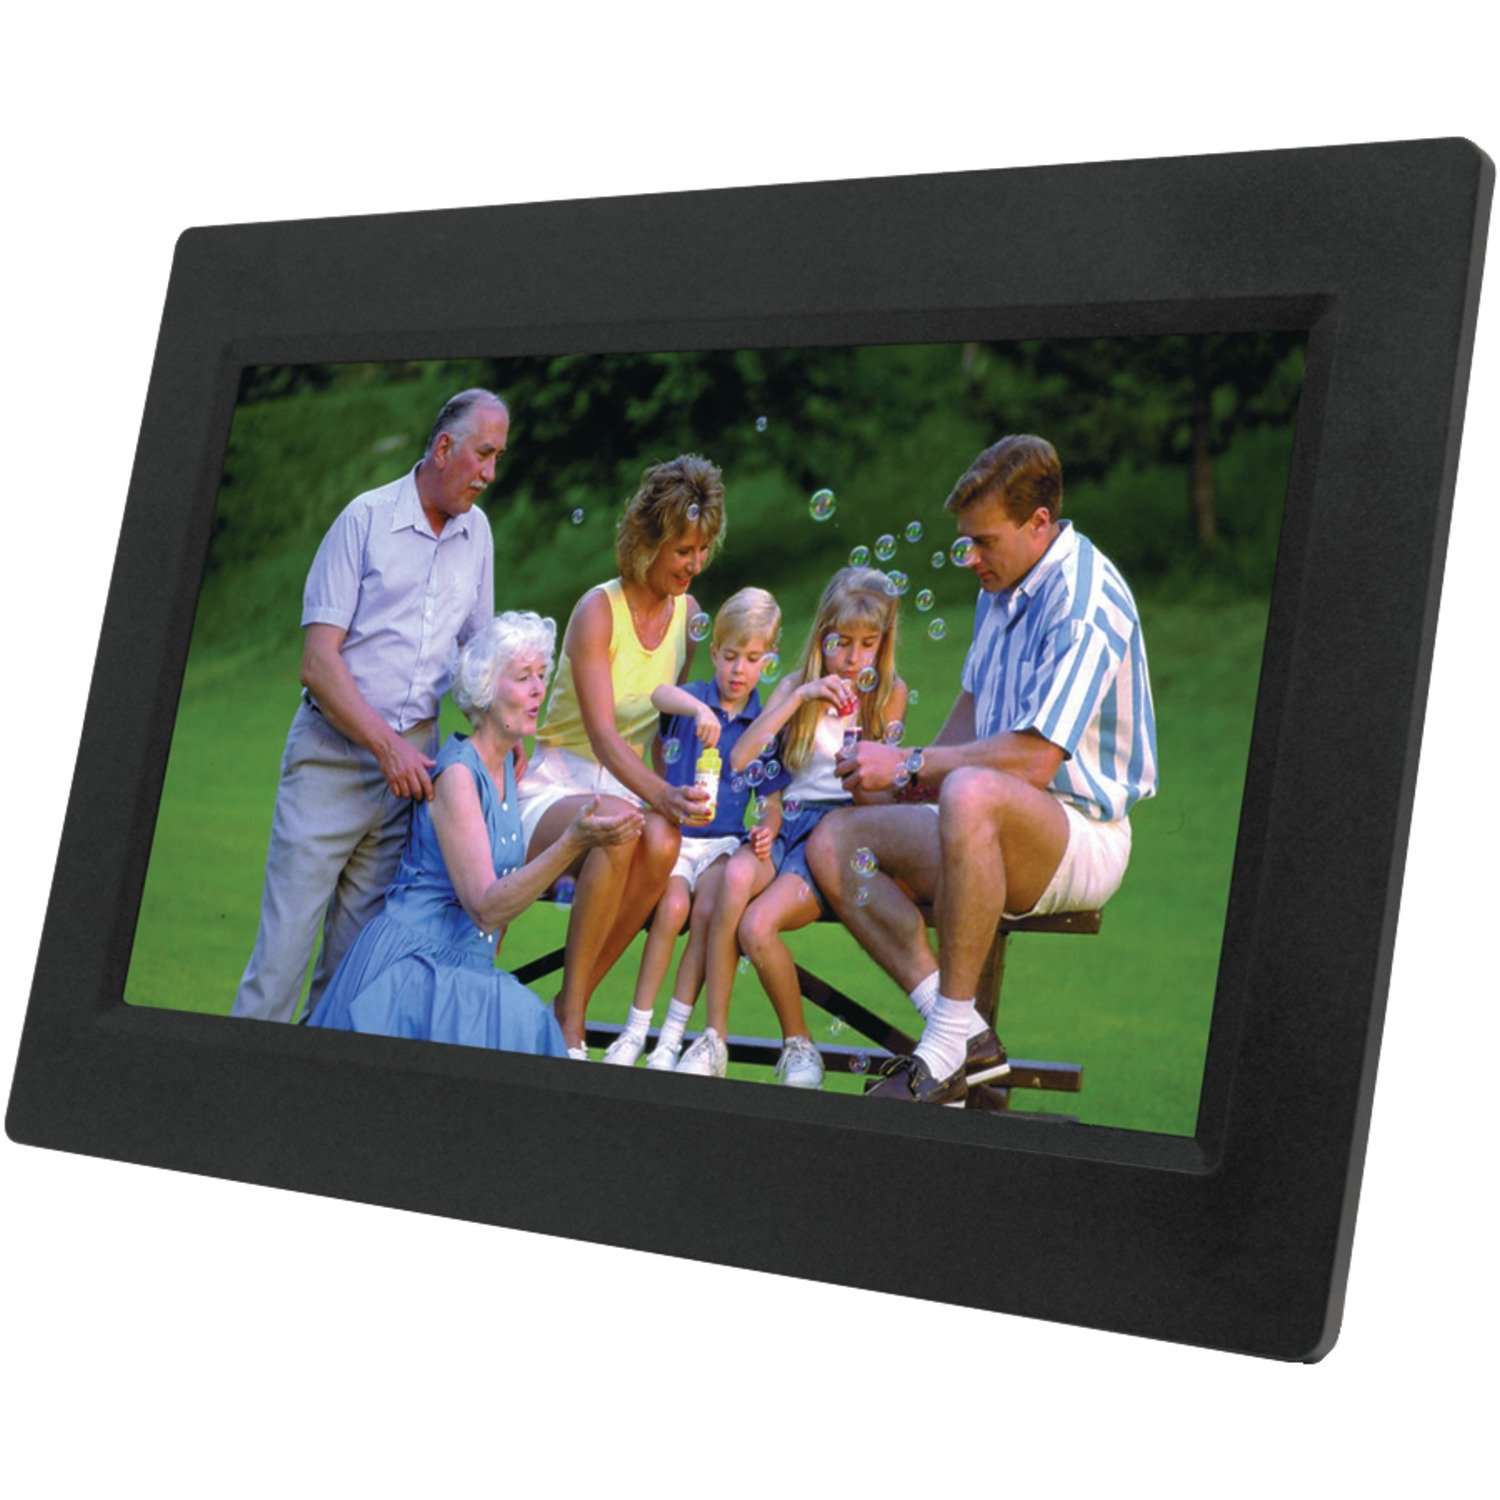 Amazon naxa electronics nf 1000 101 inch tft lcd digital amazon naxa electronics nf 1000 101 inch tft lcd digital photo frame with led backlight 1024 x 600 black camera photo jeuxipadfo Choice Image